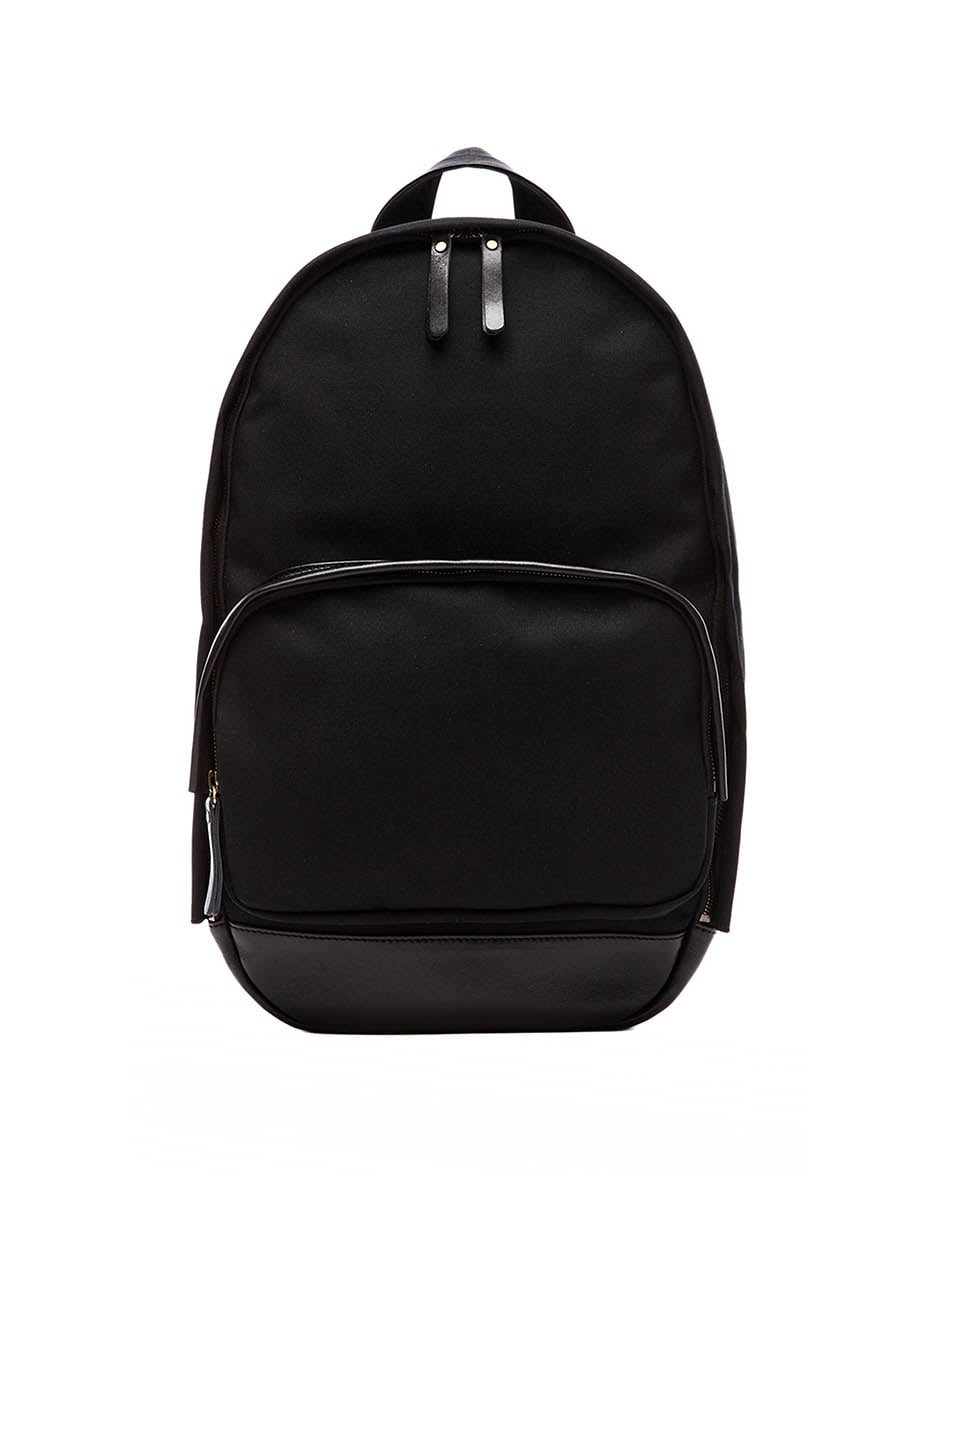 Haerfest Backpack in Black